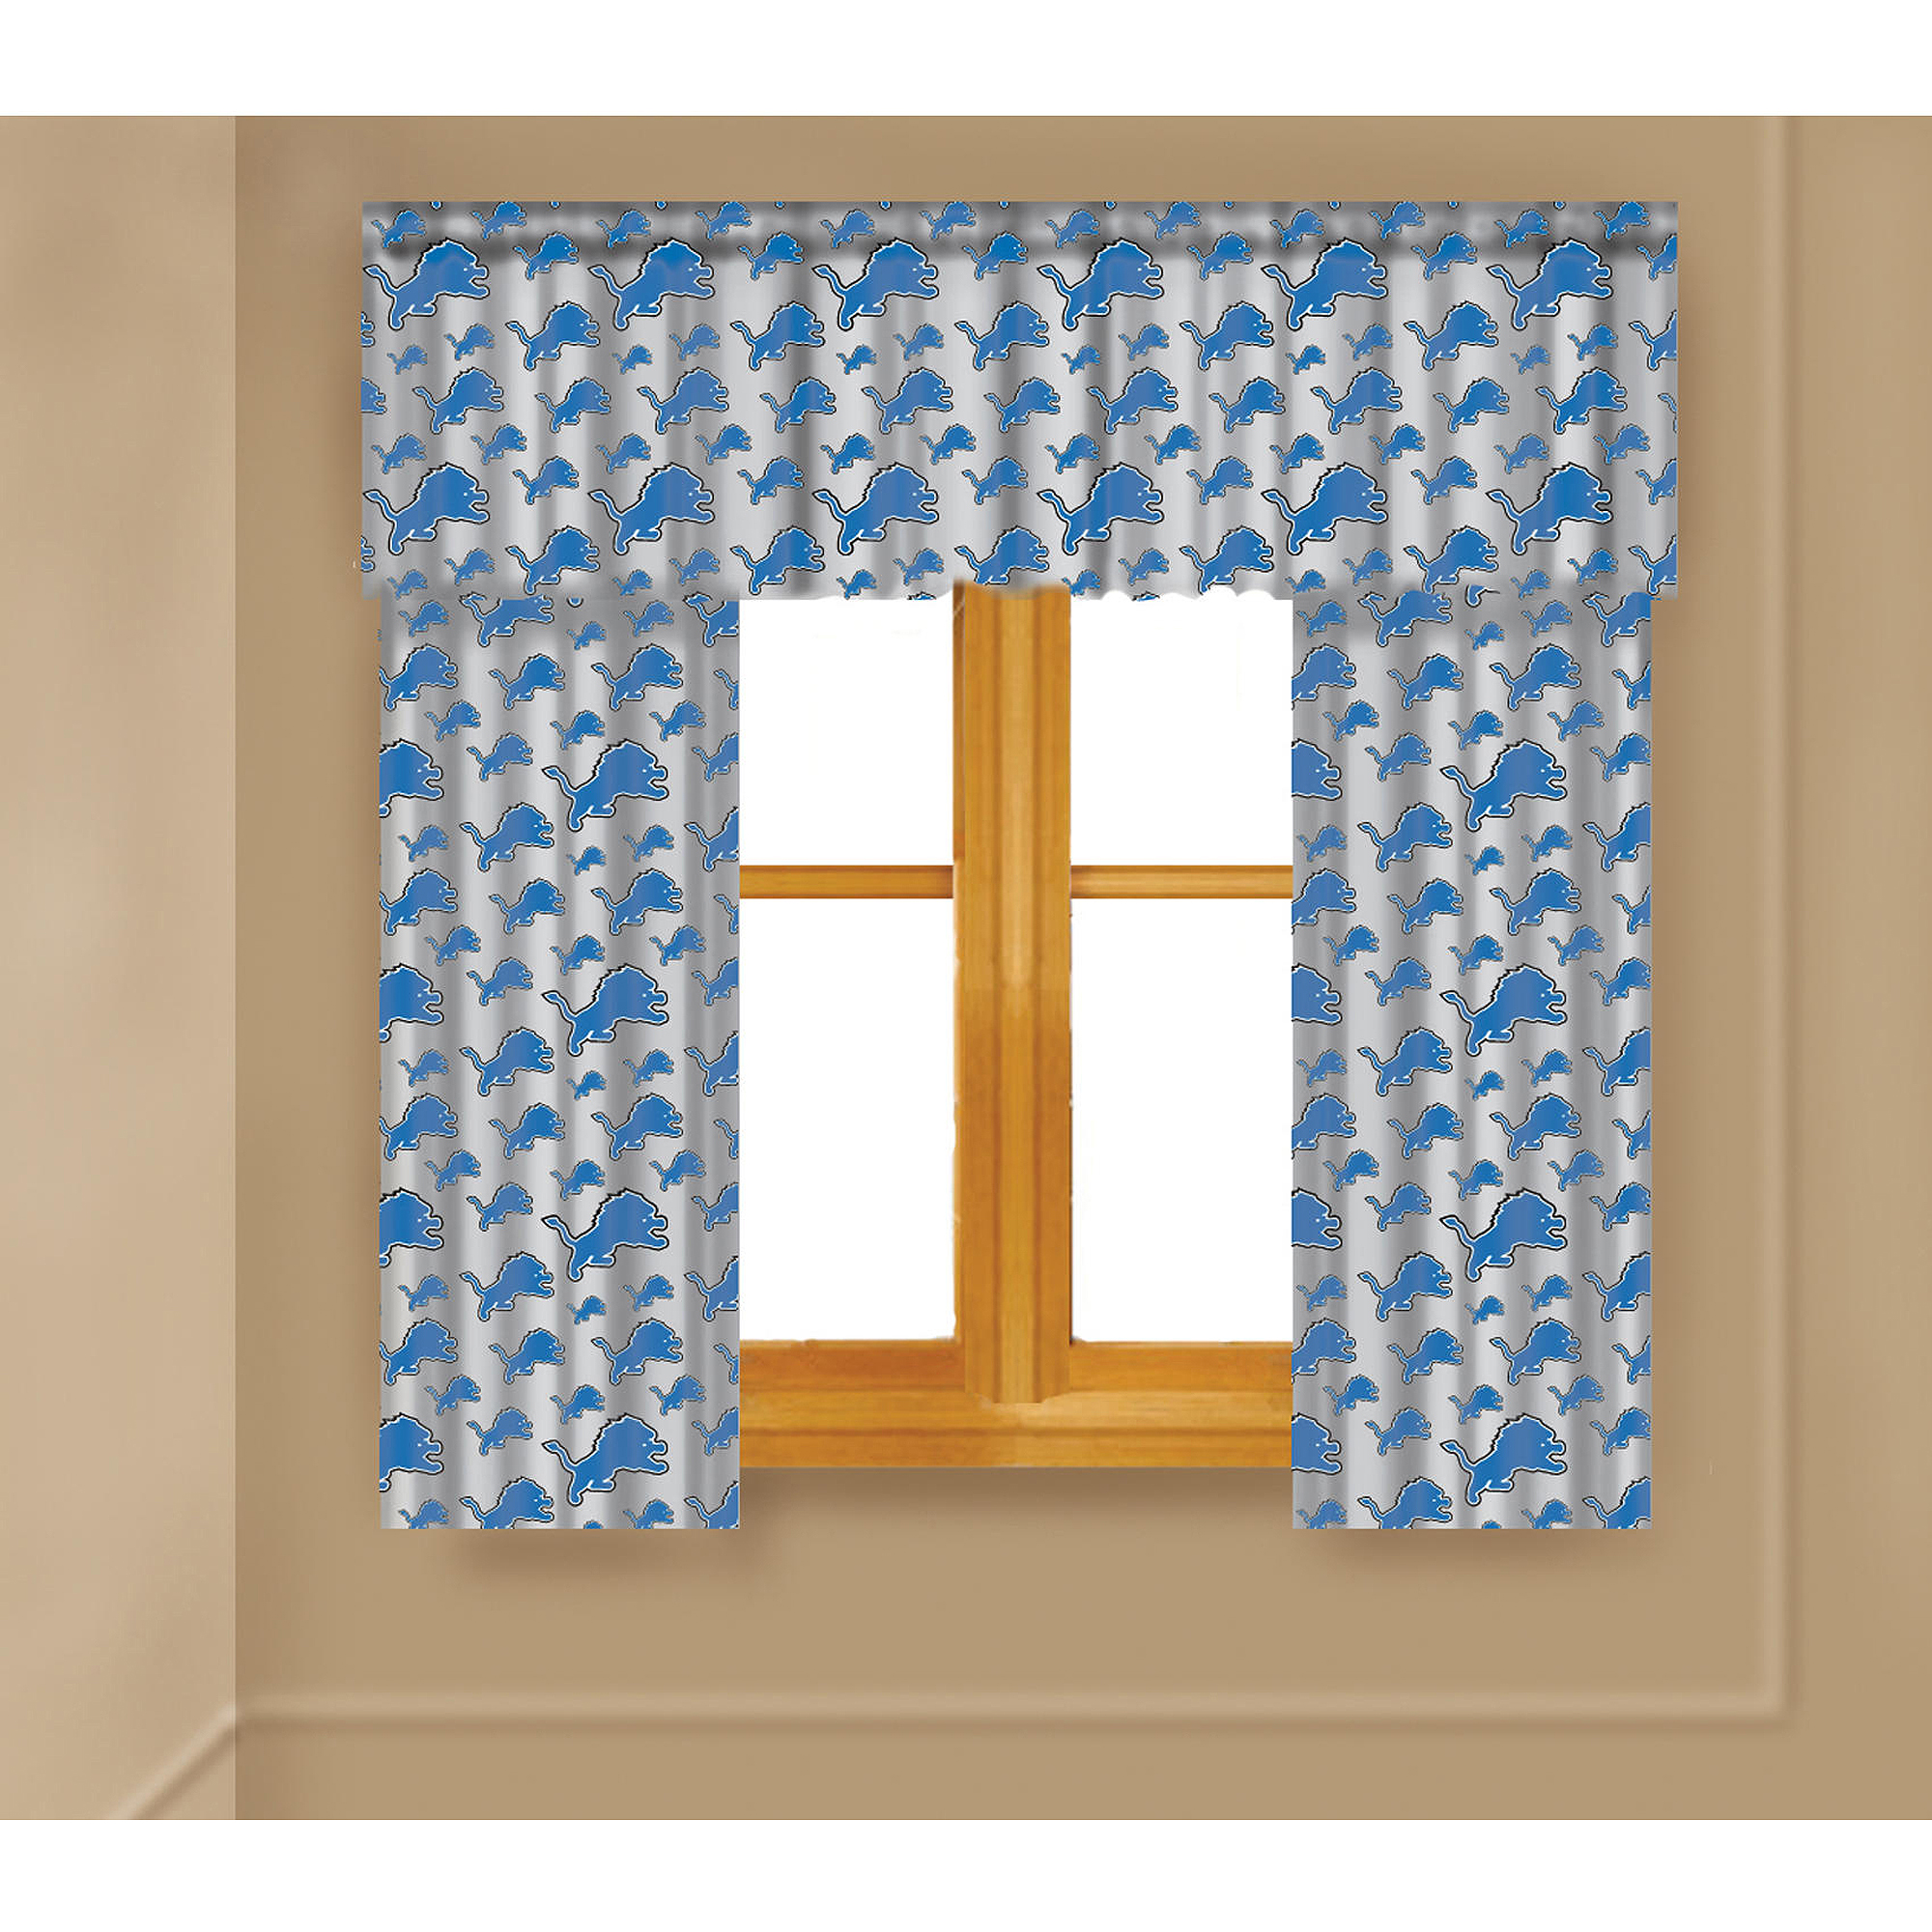 Wonderful NFL Detroit Lions Window Curtain Panels - Walmart.com WE37